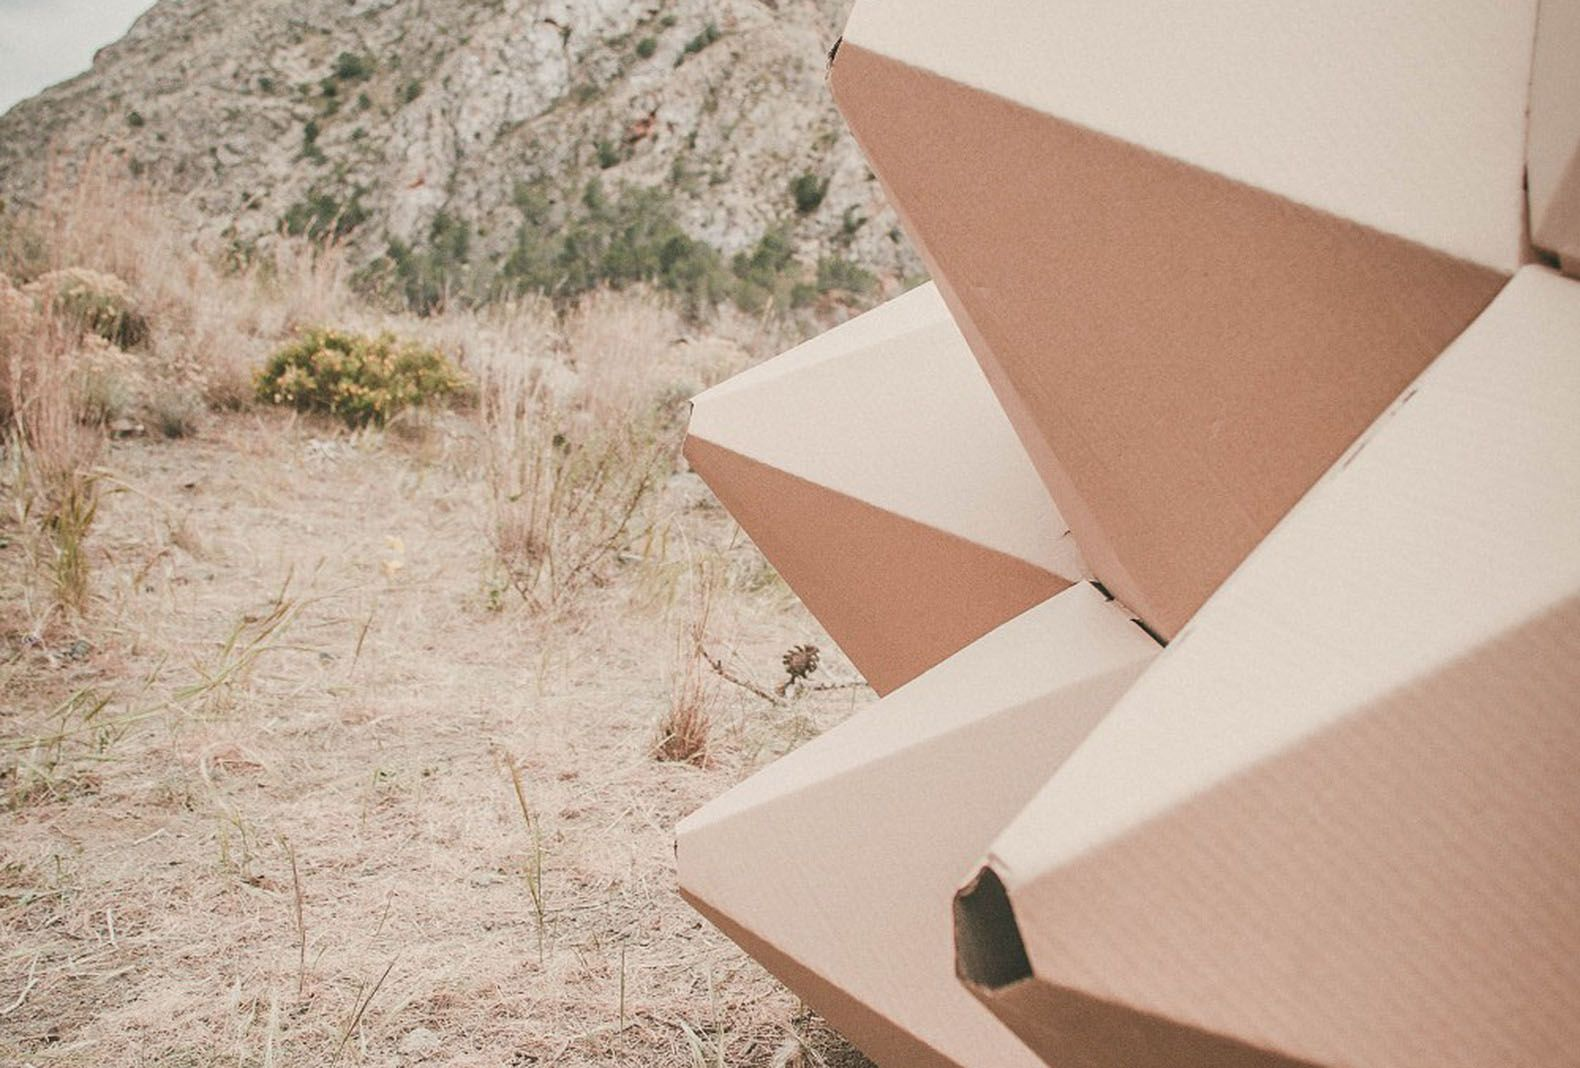 Tiny Helix Shelter made of laster-cut recycled cardboard is a temporary habitat for one